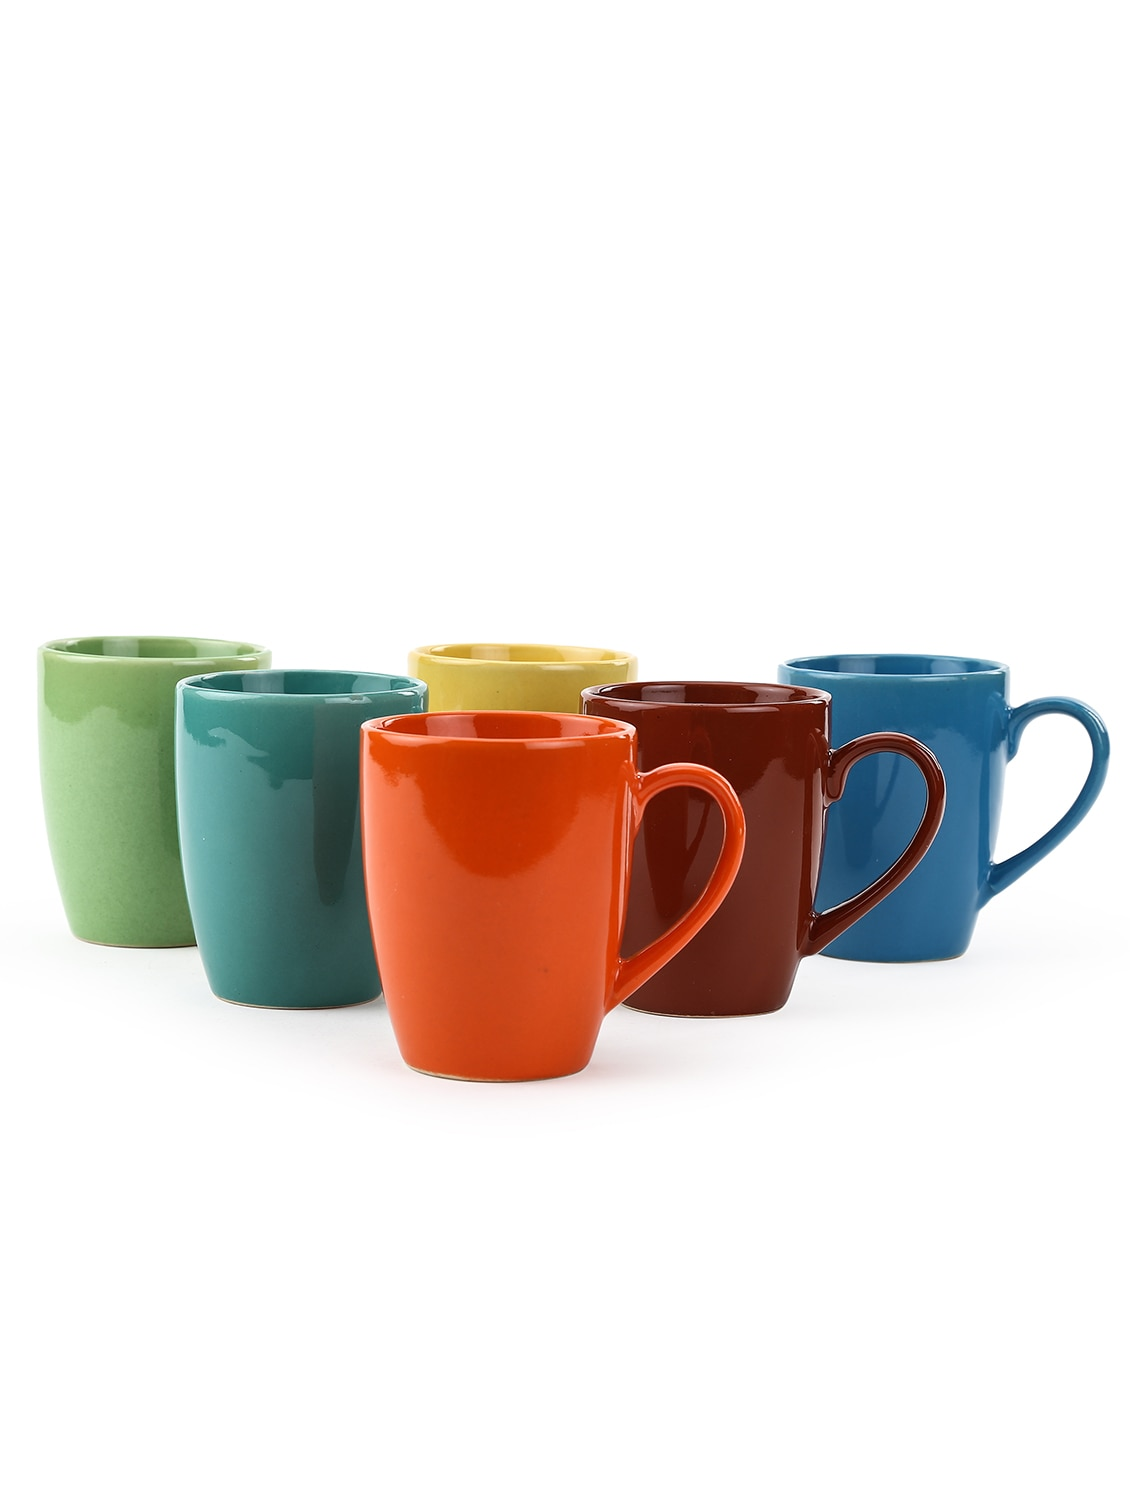 Large Coffee Mug Sets Buy Multi Color Large Mugs Set Of 6 By Kittens Online